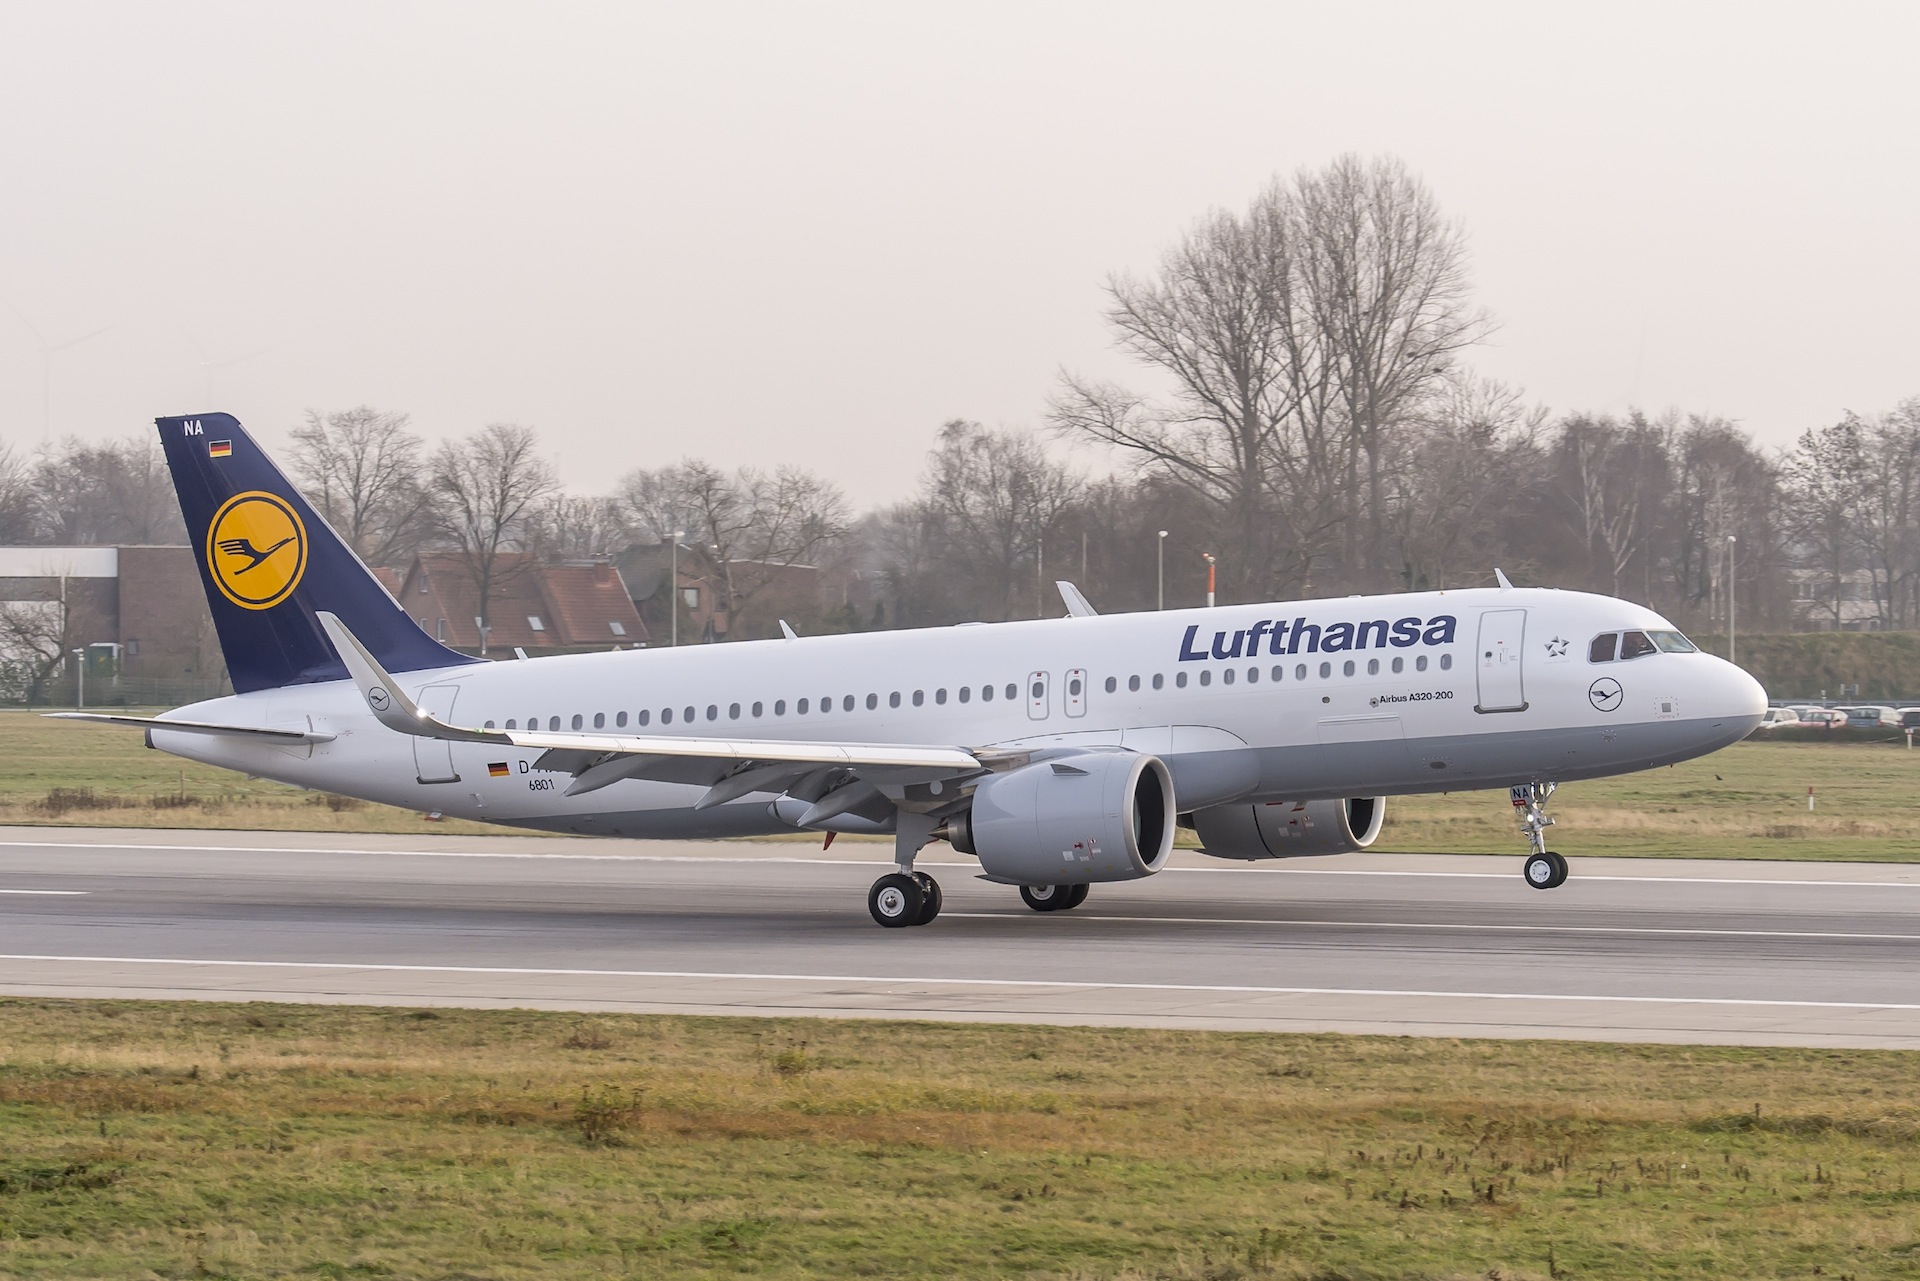 Lufthansa Airbus A320neo D-AINA. Photo courtesy the airline.